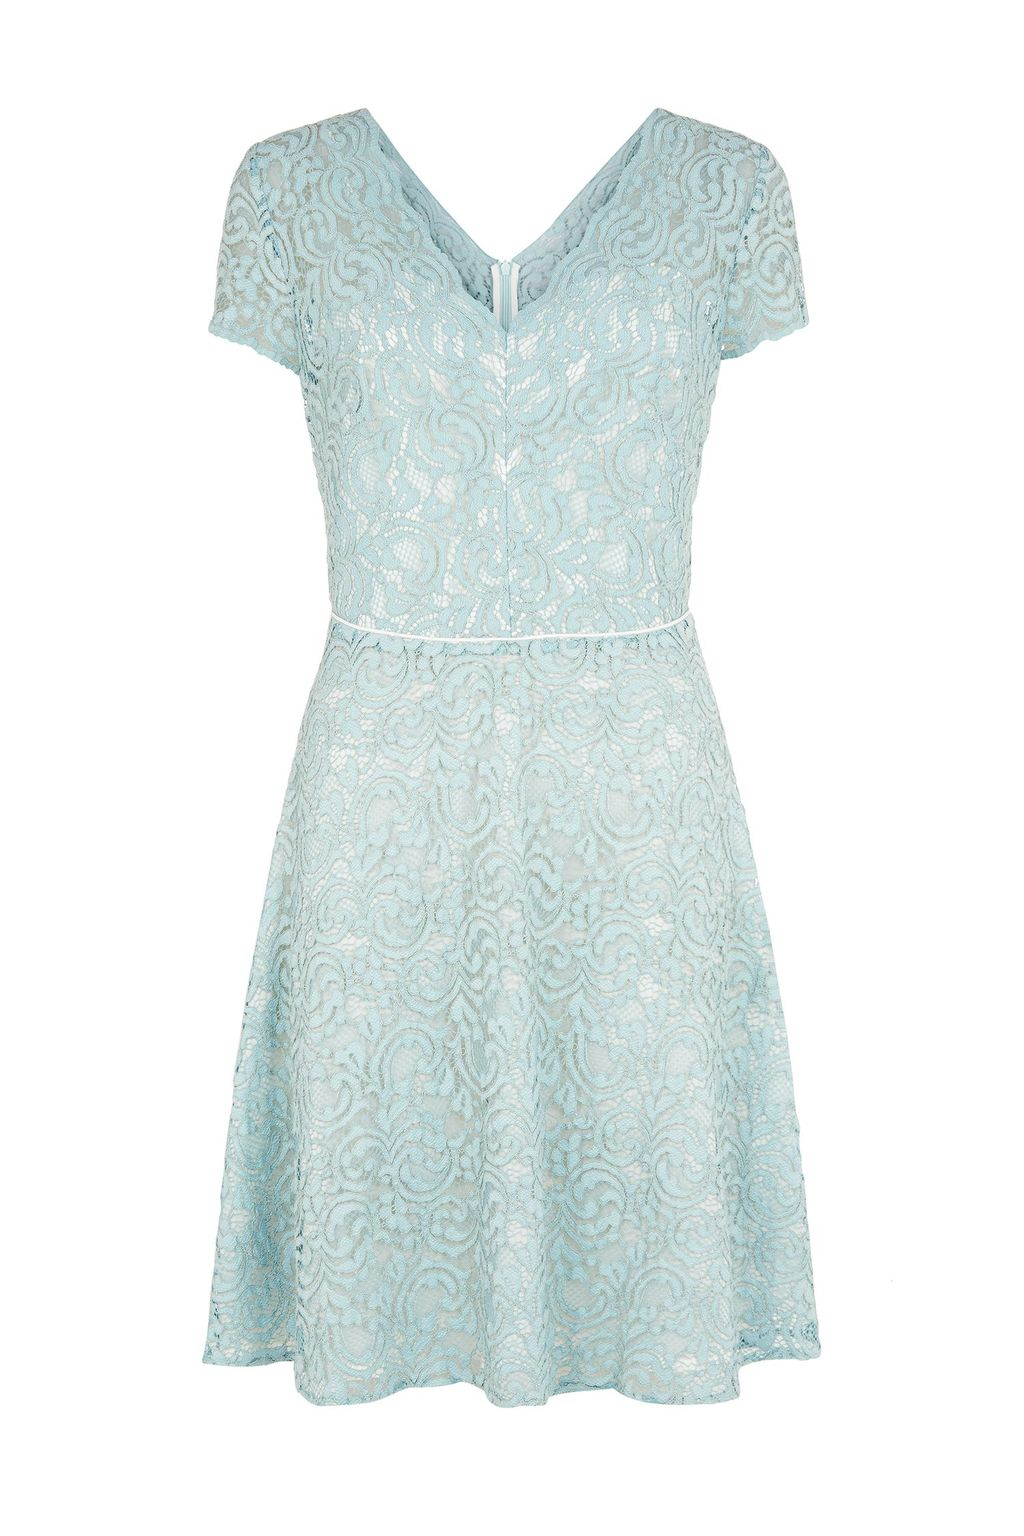 Gardenia Dress, Green - length: mid thigh; neckline: low v-neck; predominant colour: pistachio; fit: fitted at waist & bust; style: fit & flare; fibres: nylon - mix; occasions: occasion; sleeve length: short sleeve; sleeve style: standard; texture group: lace; pattern type: fabric; pattern size: standard; pattern: patterned/print; season: s/s 2015; wardrobe: event